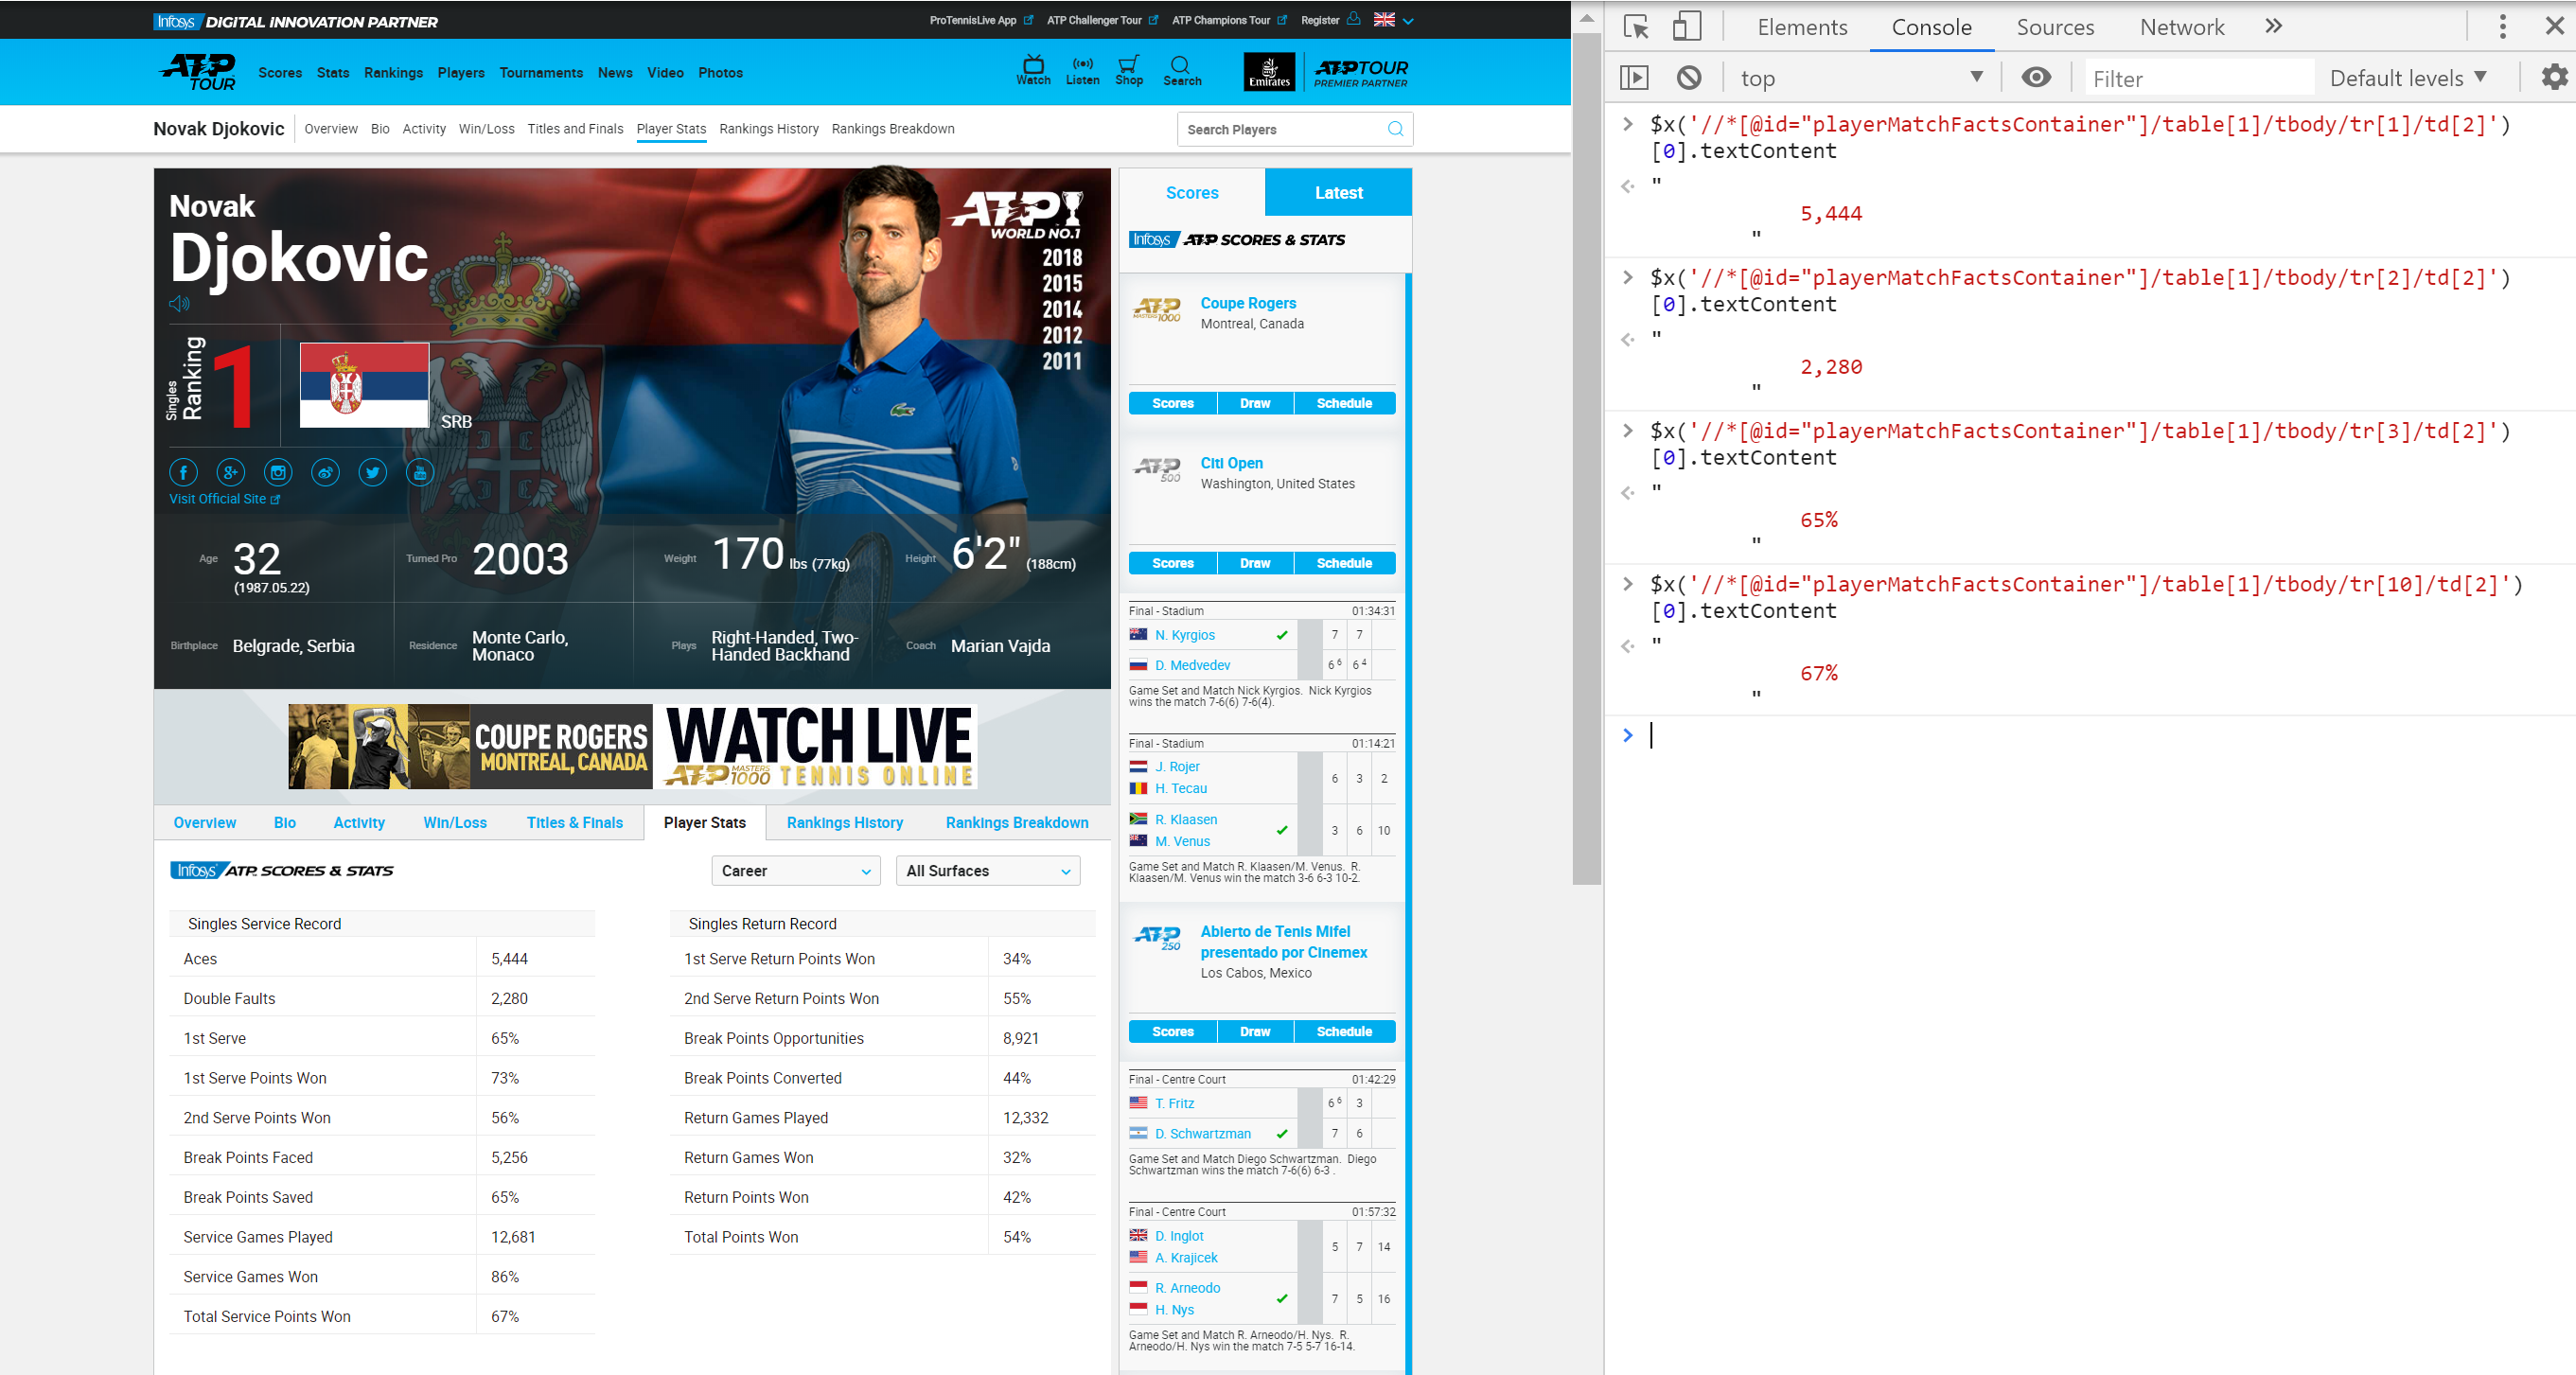 The King of Serving: Tennis Web Scraping with Selenium